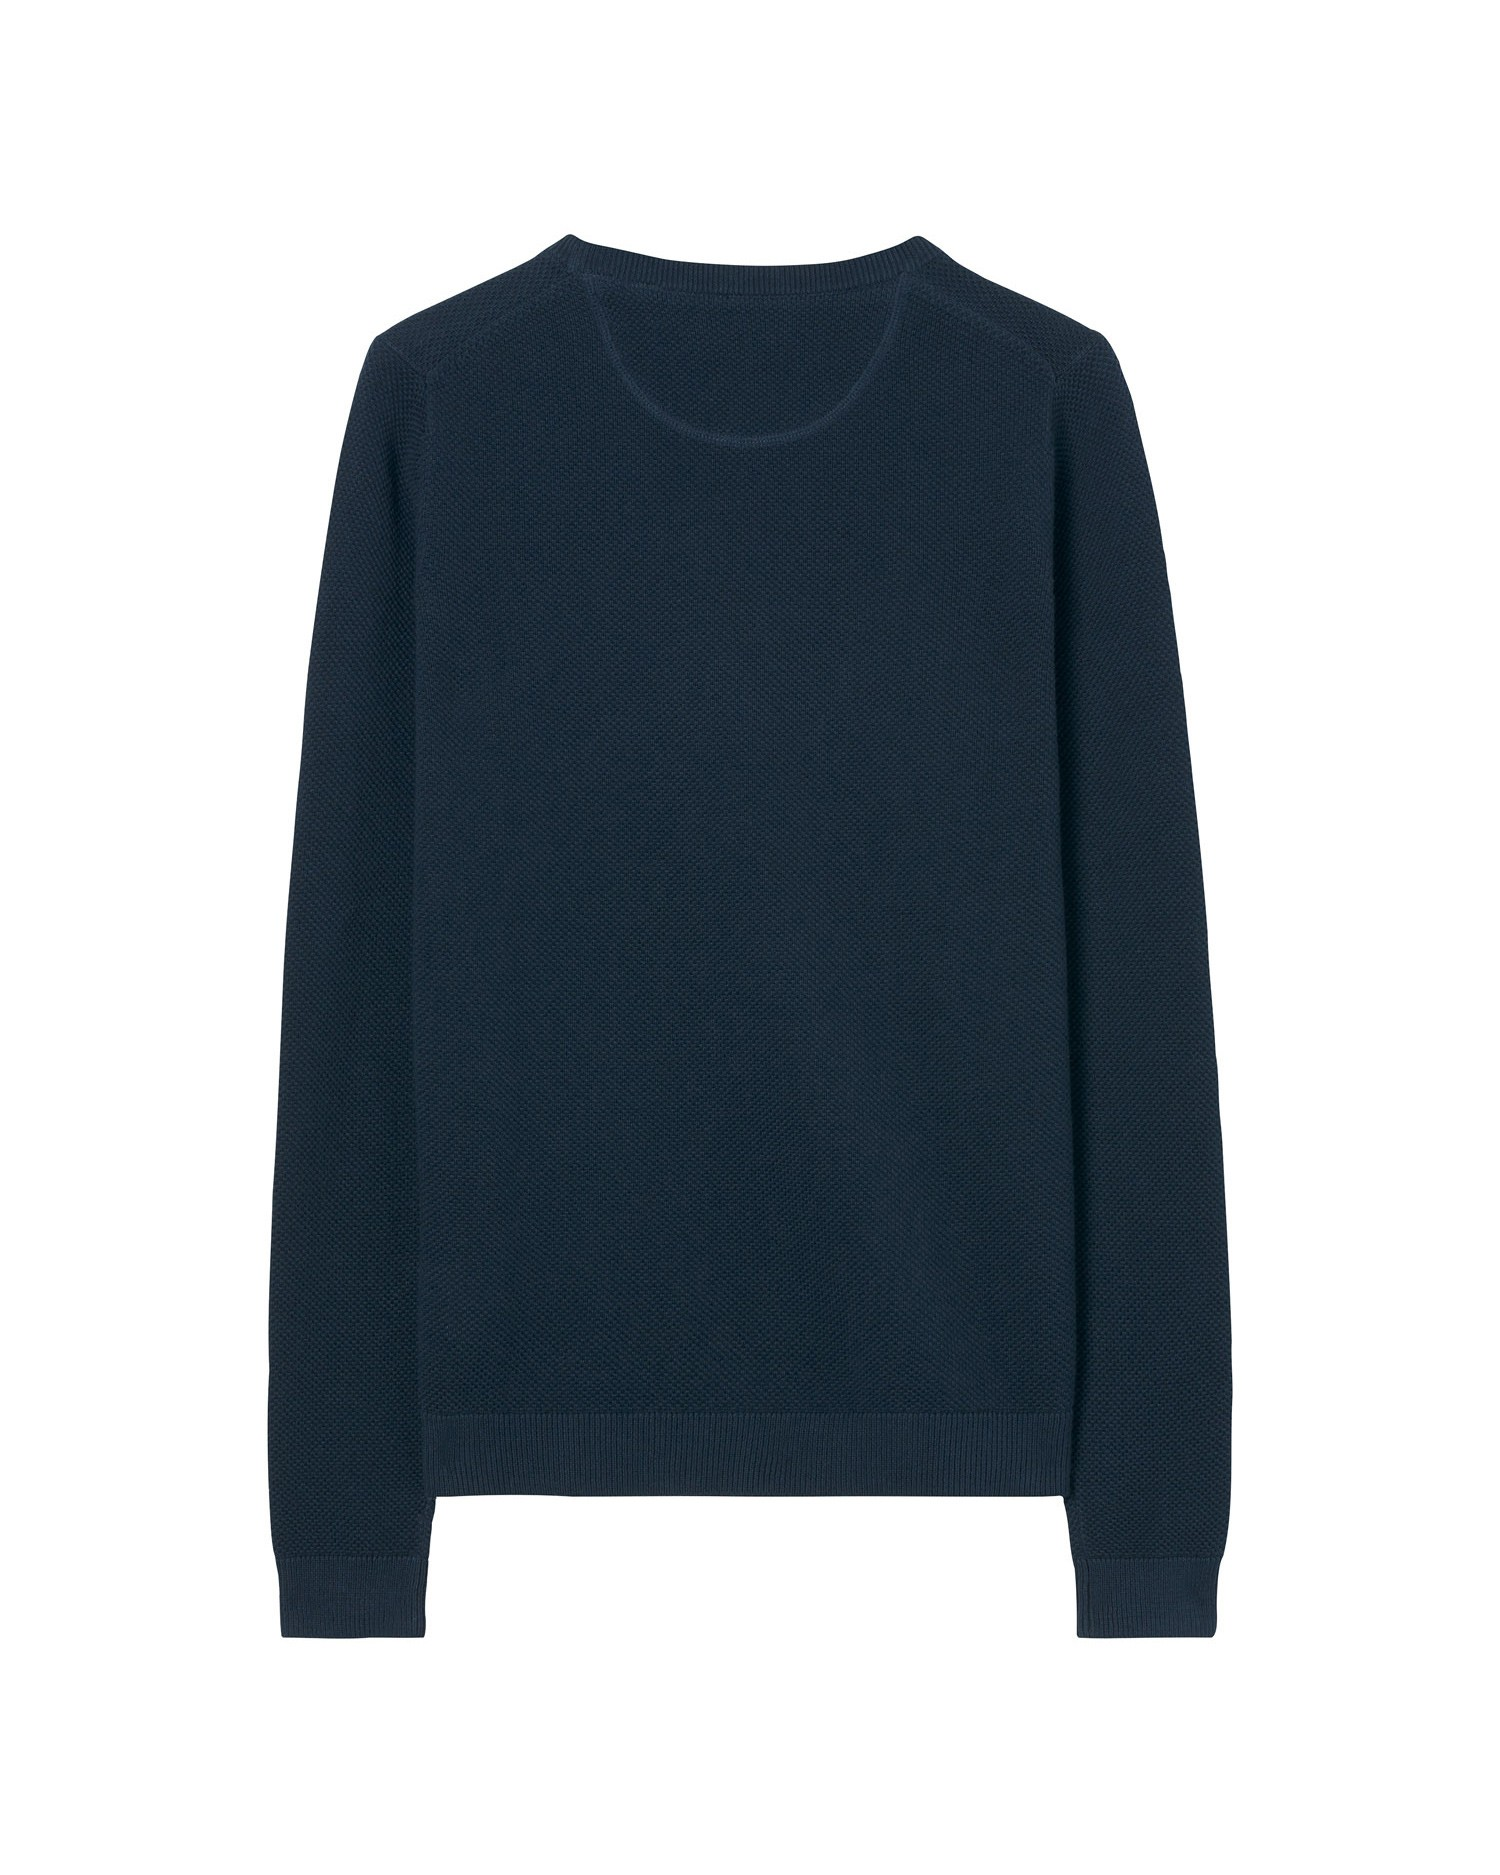 GANT Women's Cotton Pique Sweater - 480031